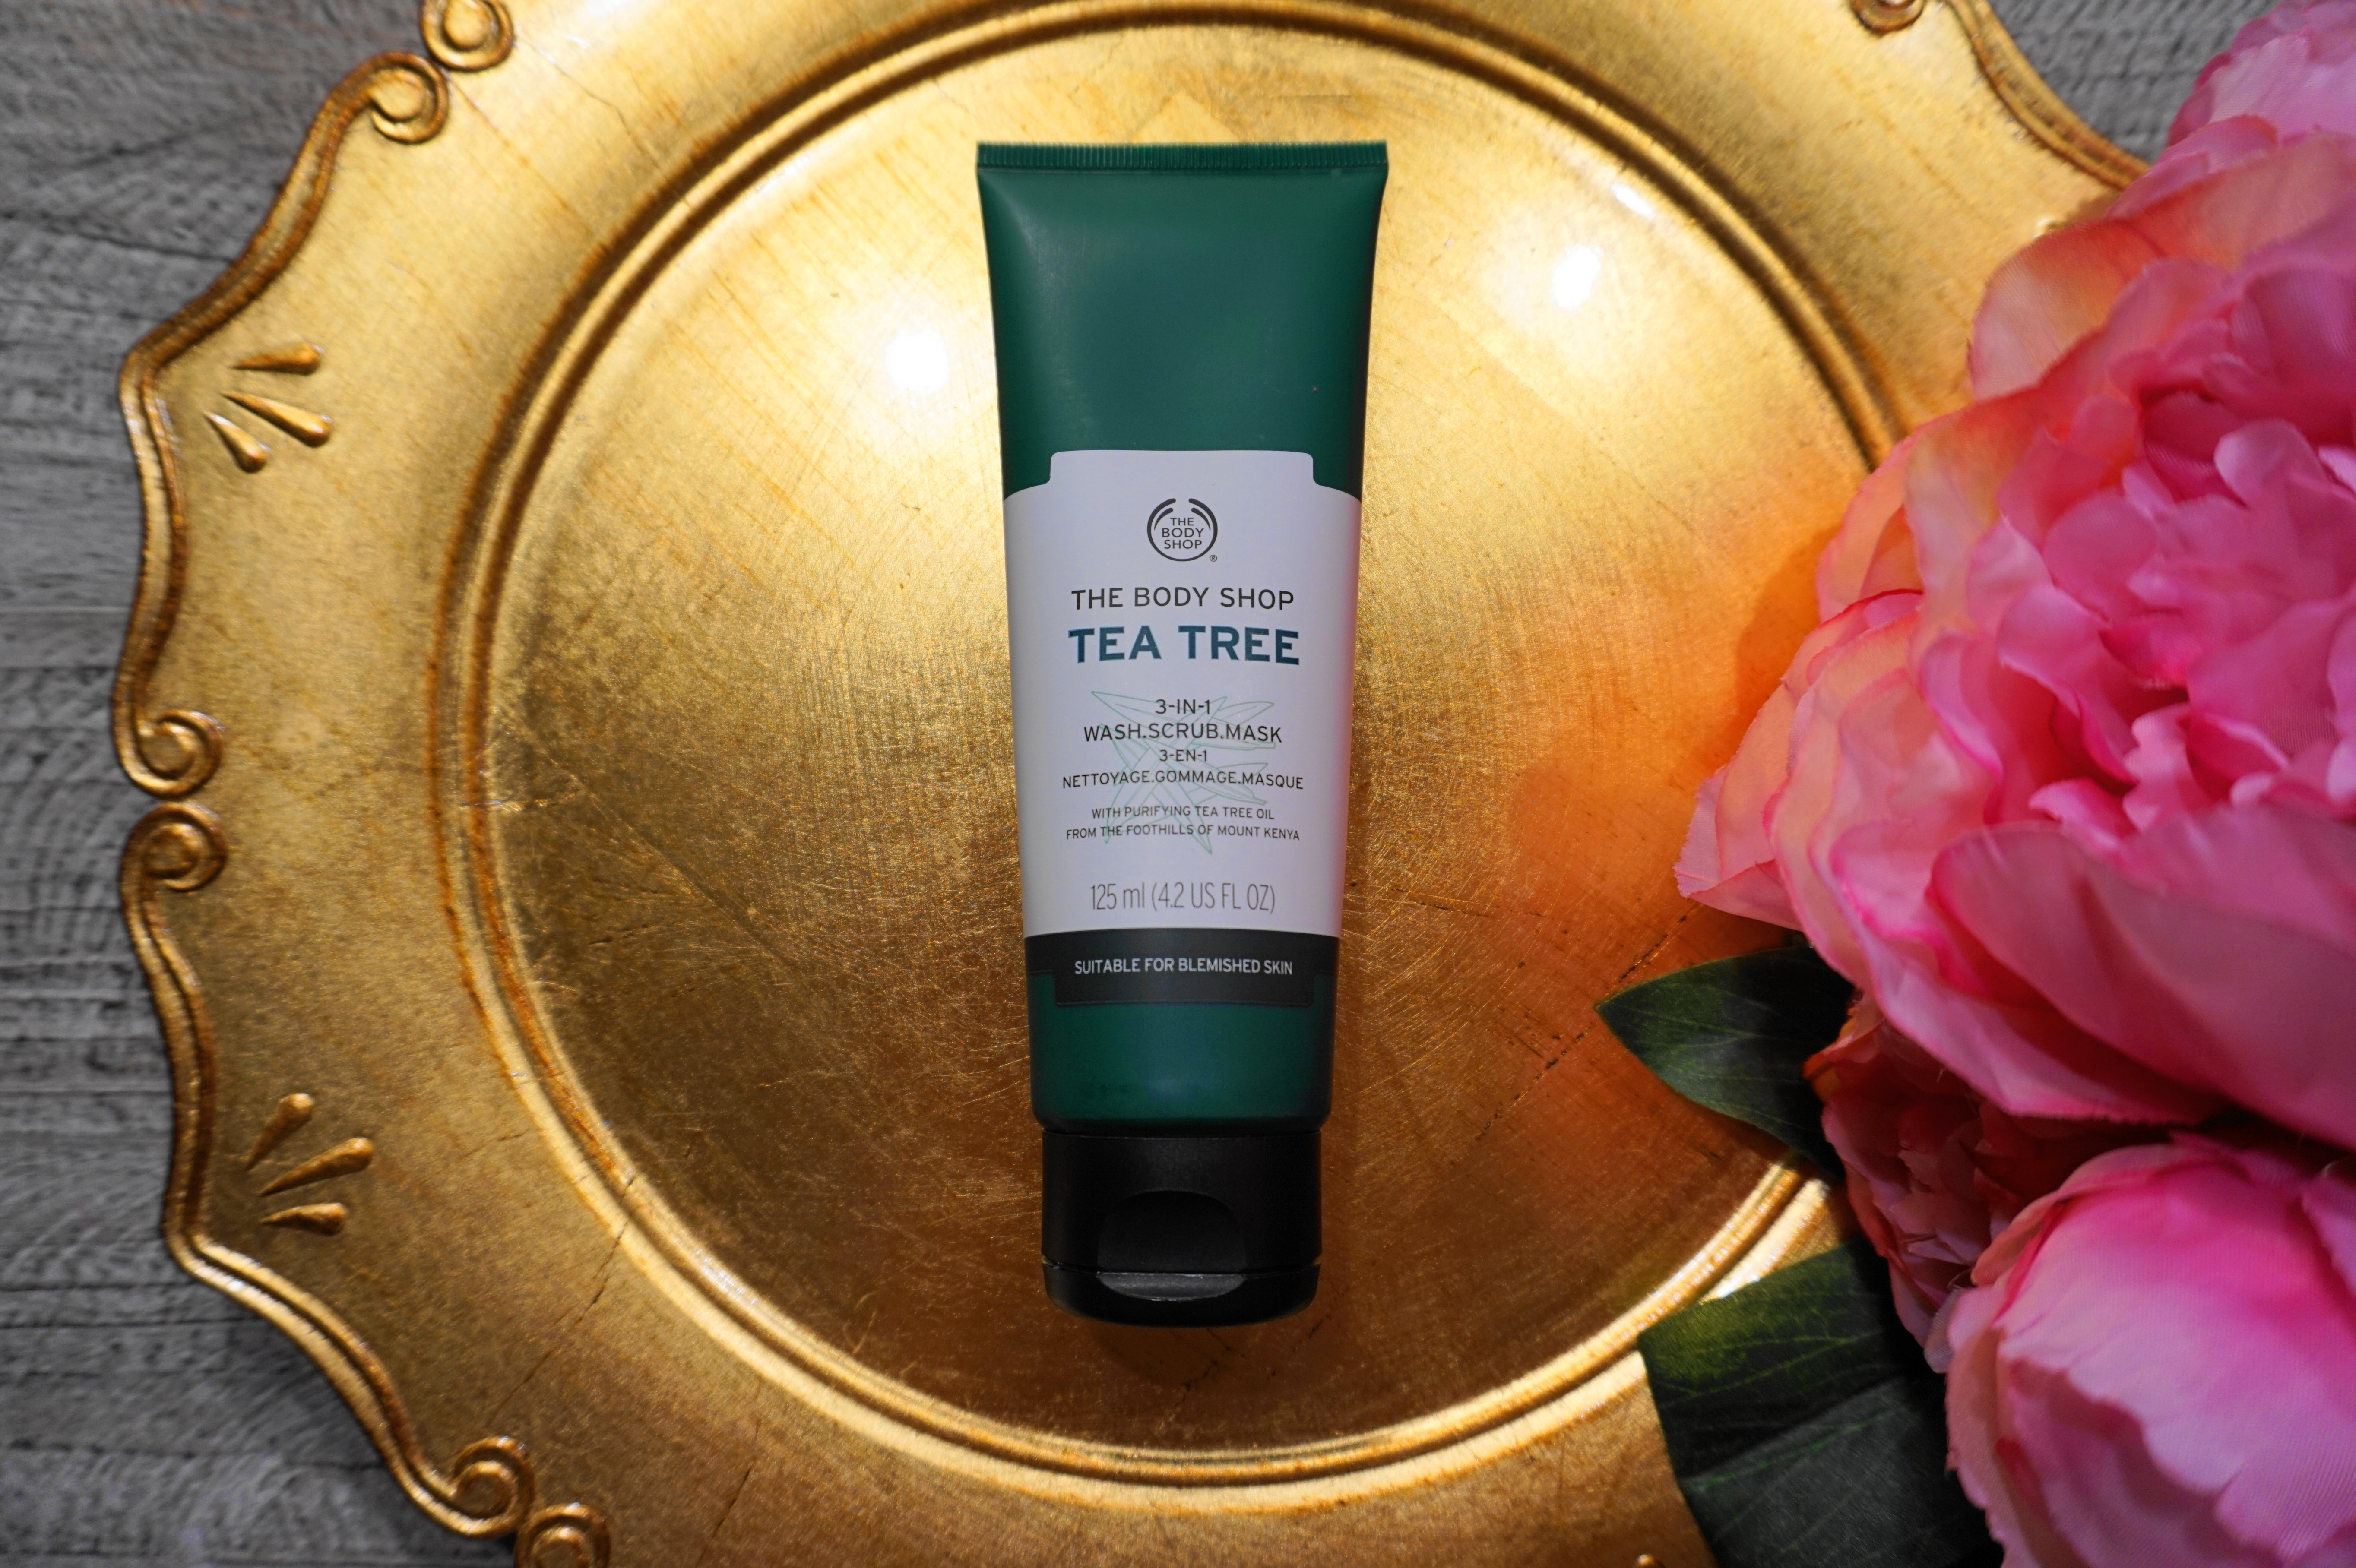 The Body Shop Tea Tree 3 In 1 Wash Scrub Mask Review Adryana S